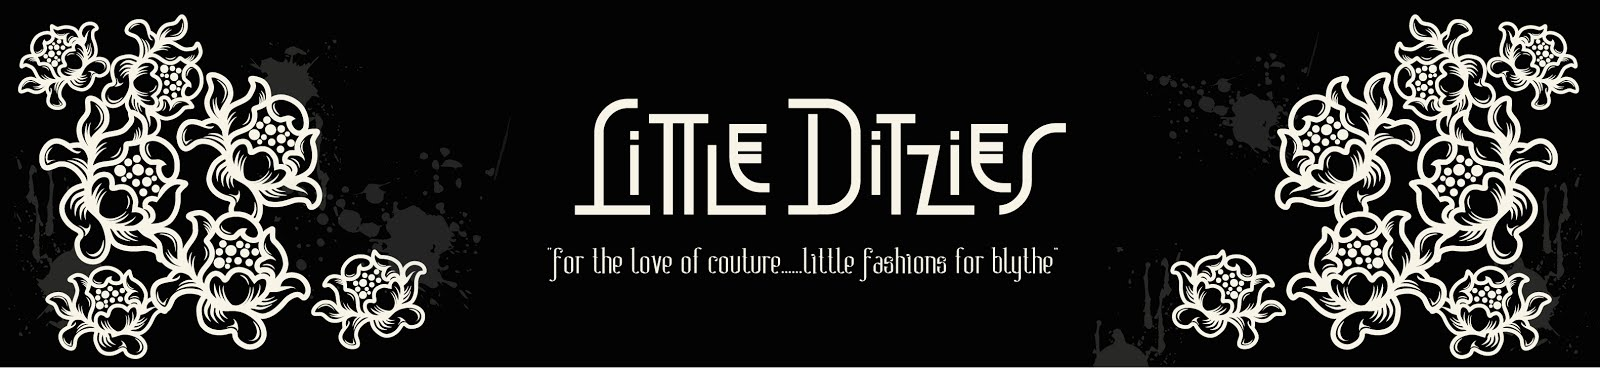 Little Ditzies